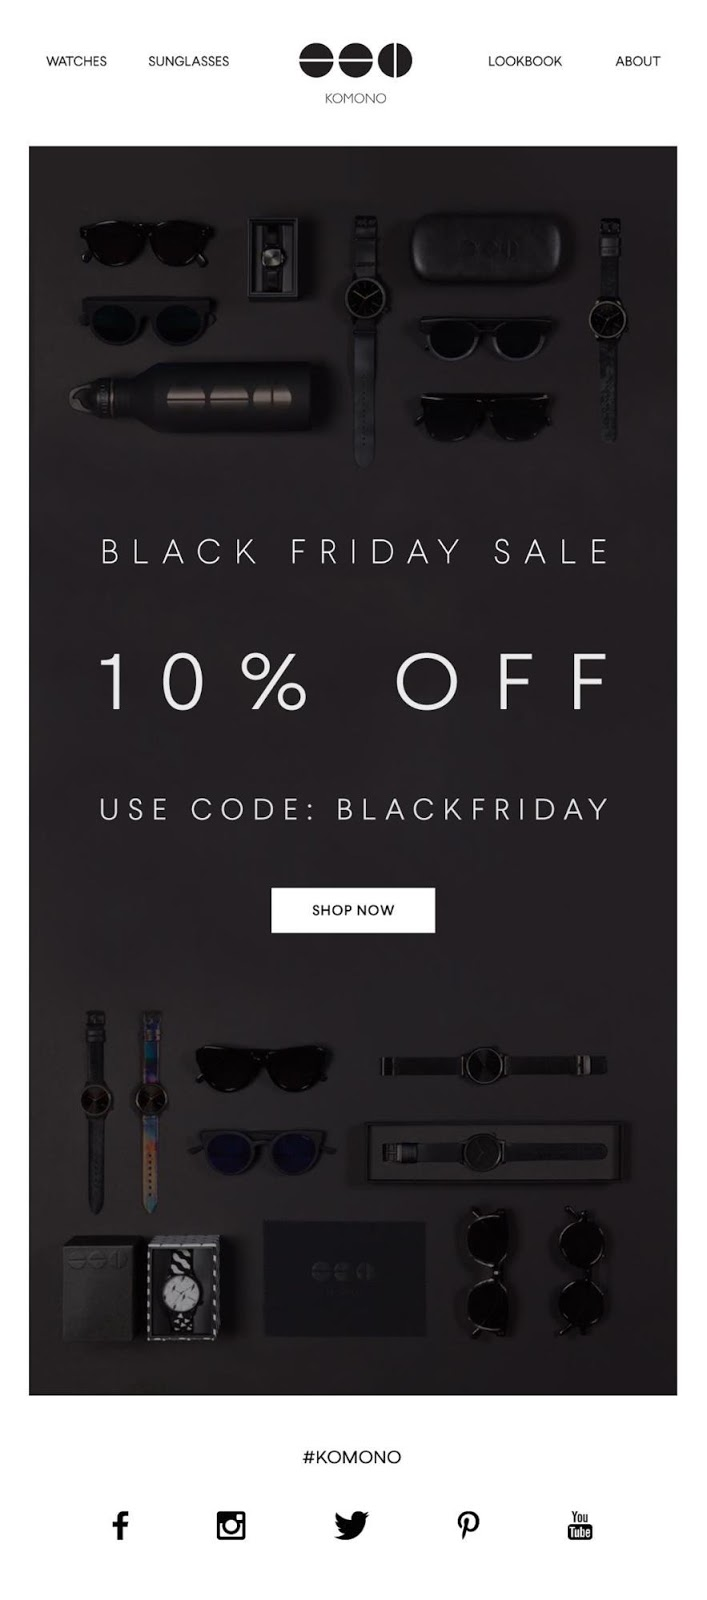 successful-marketing-campaigns-black-friday-email-campaign